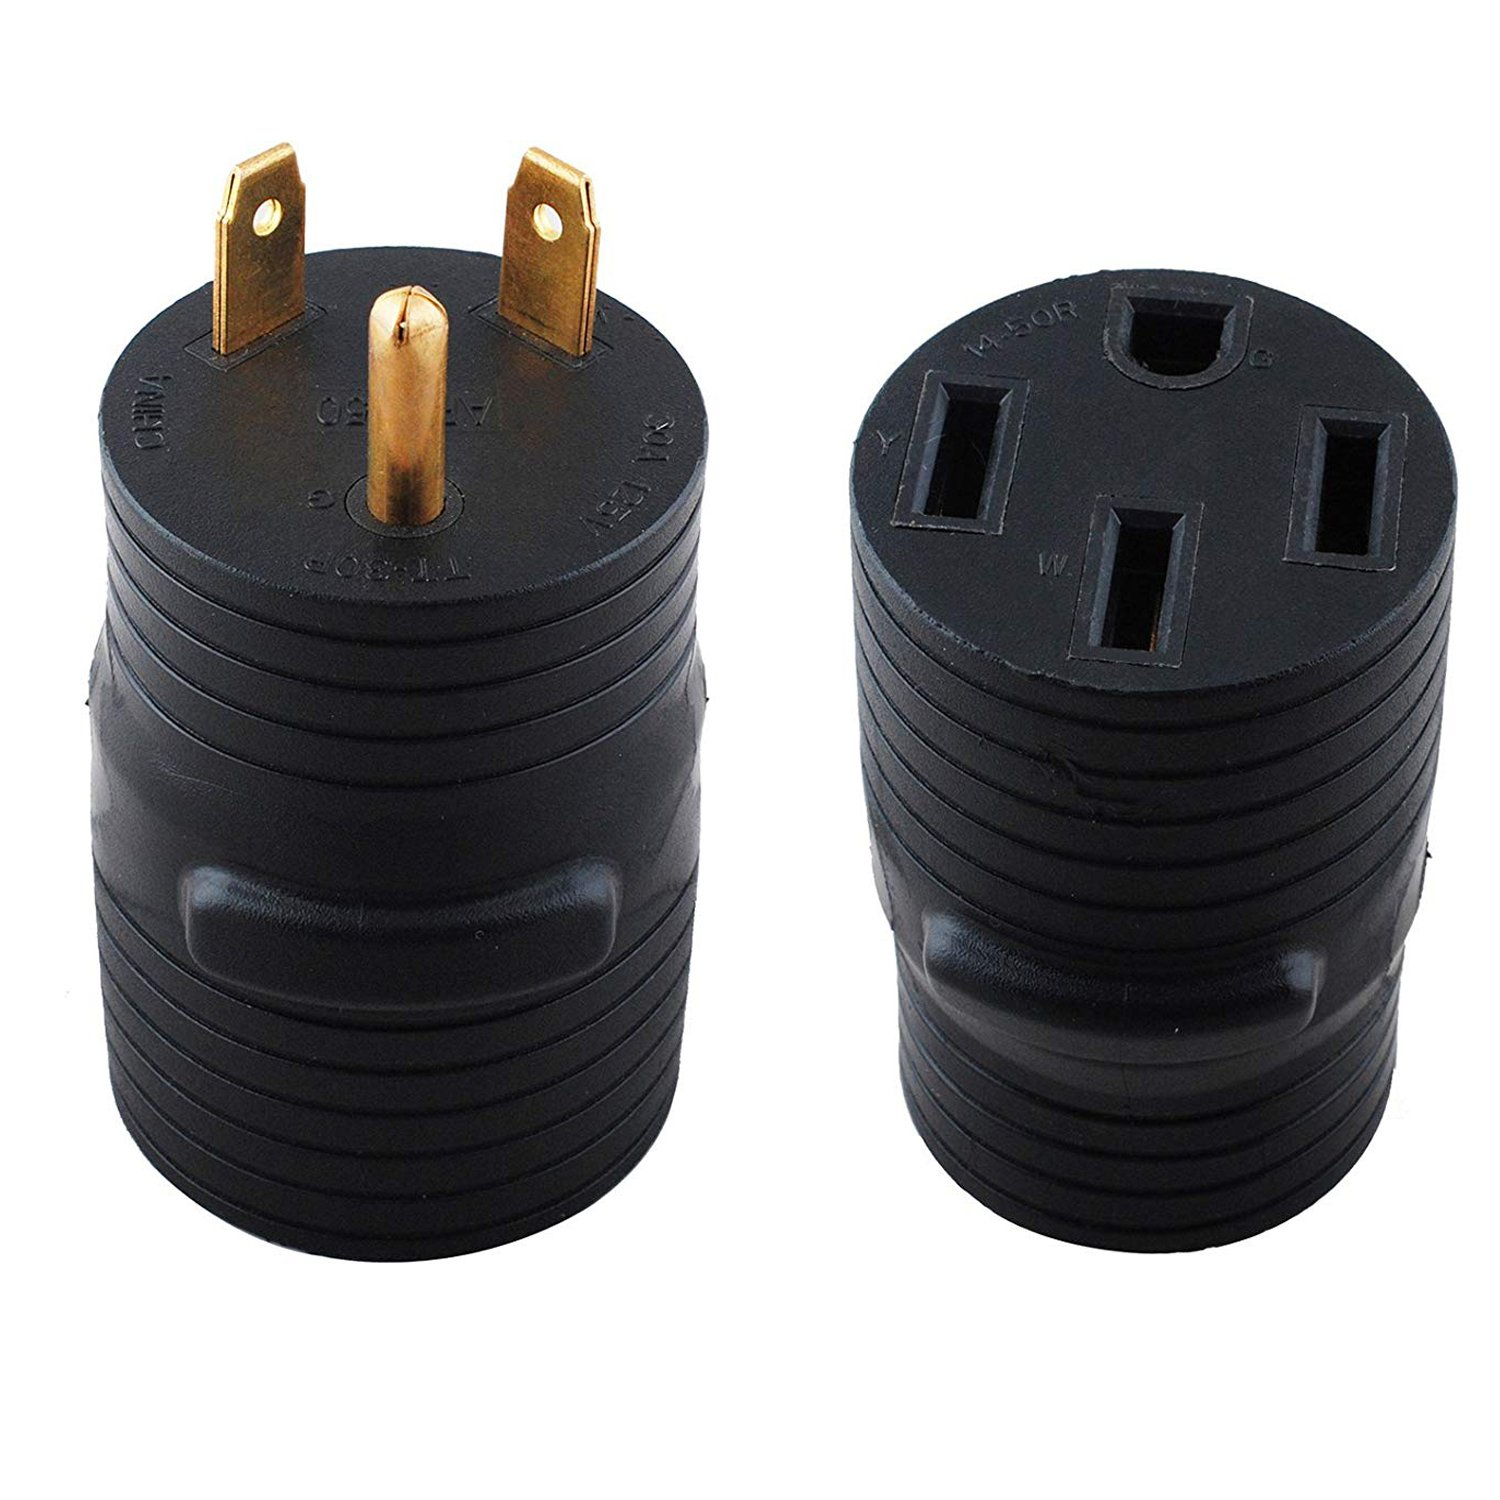 Wadoy 30 Male to 50 Amp Female Adapter